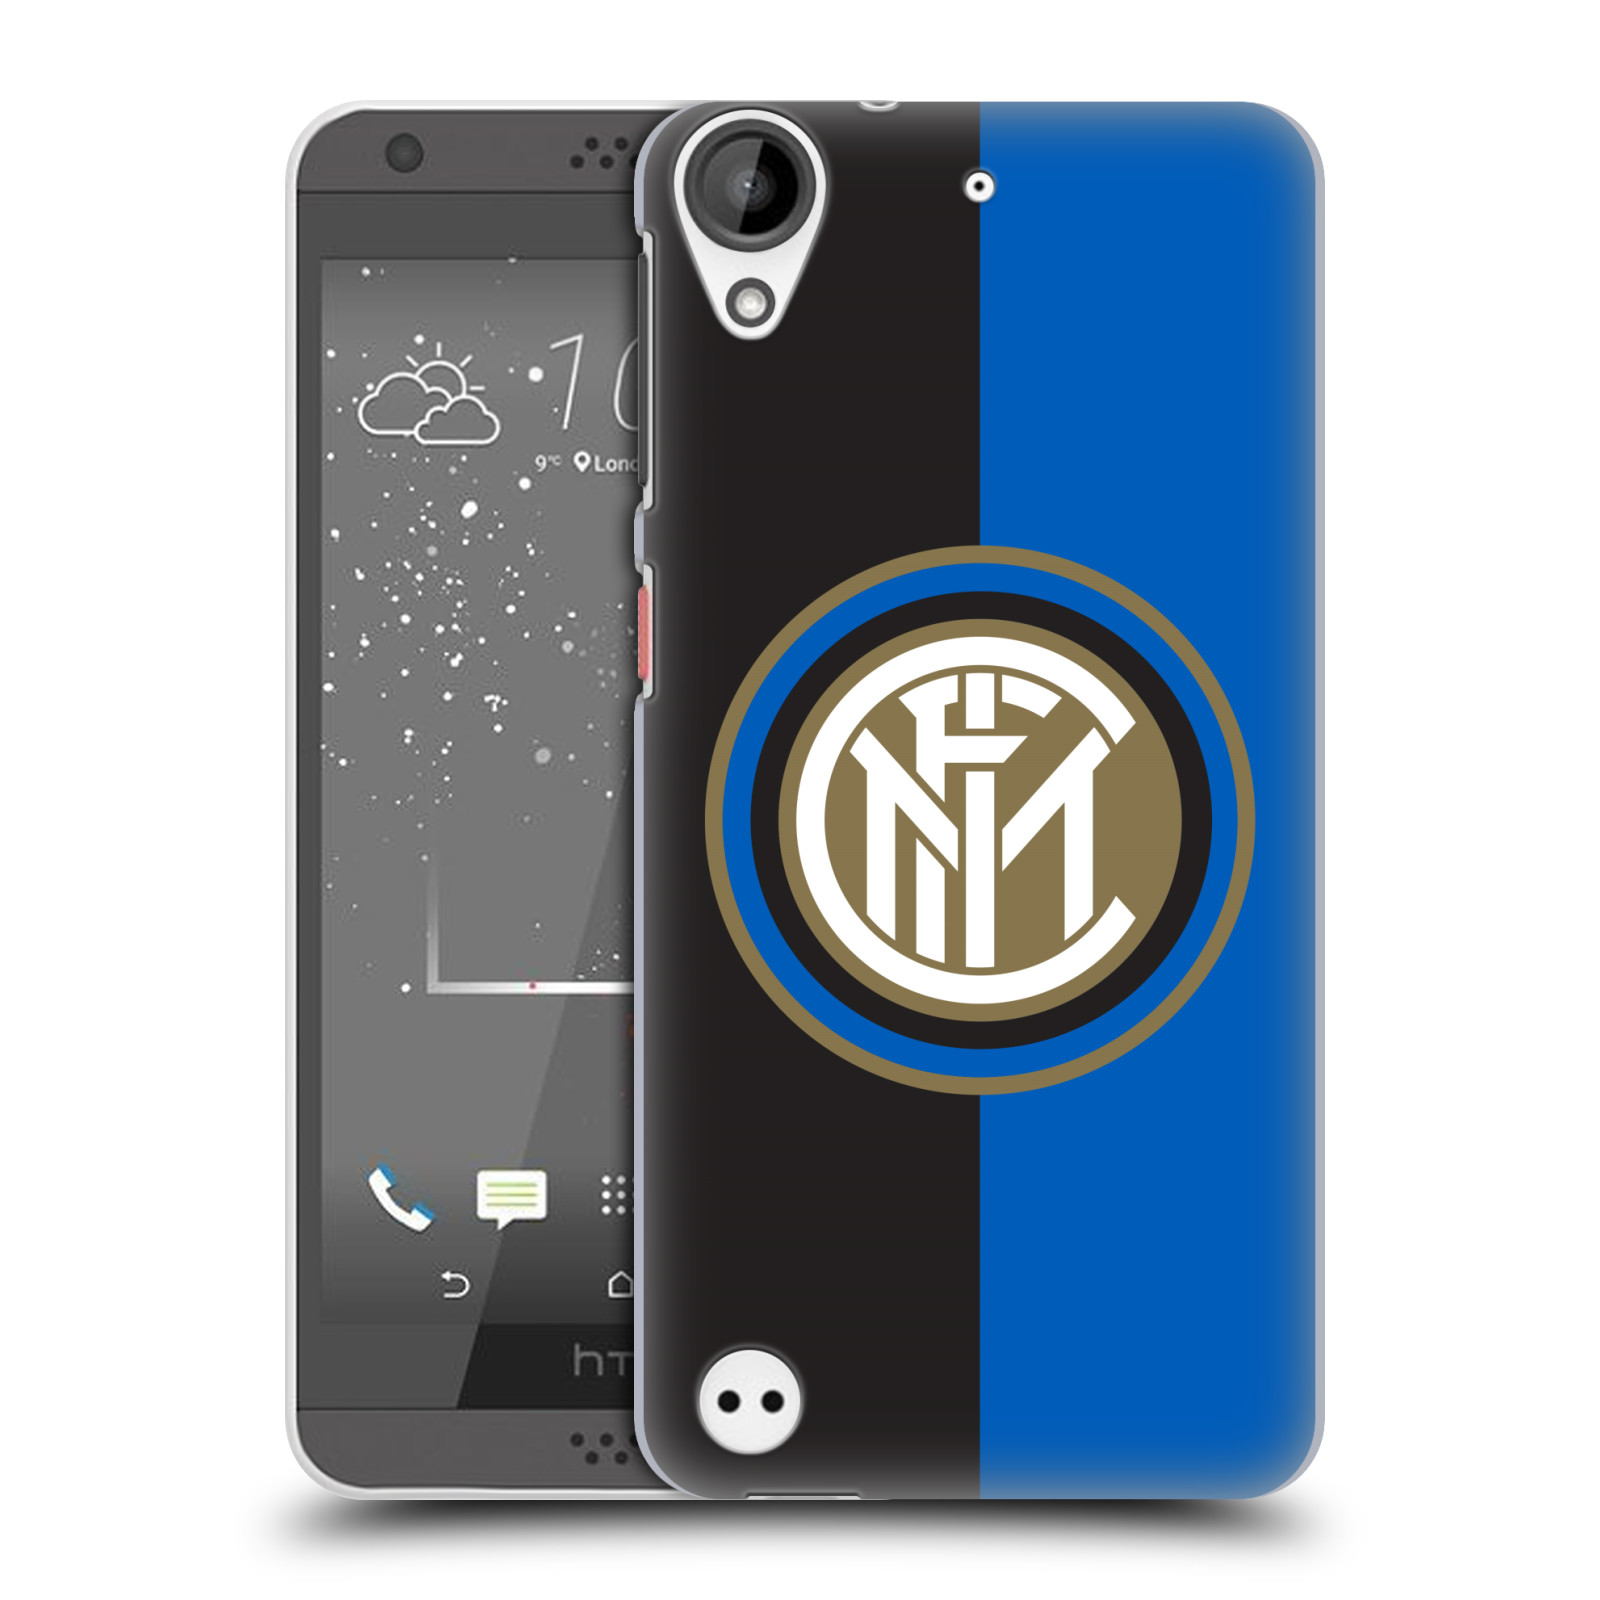 Plastové pouzdro na mobil HTC Desire 530 - Head Case - Inter Milan - Black and blue